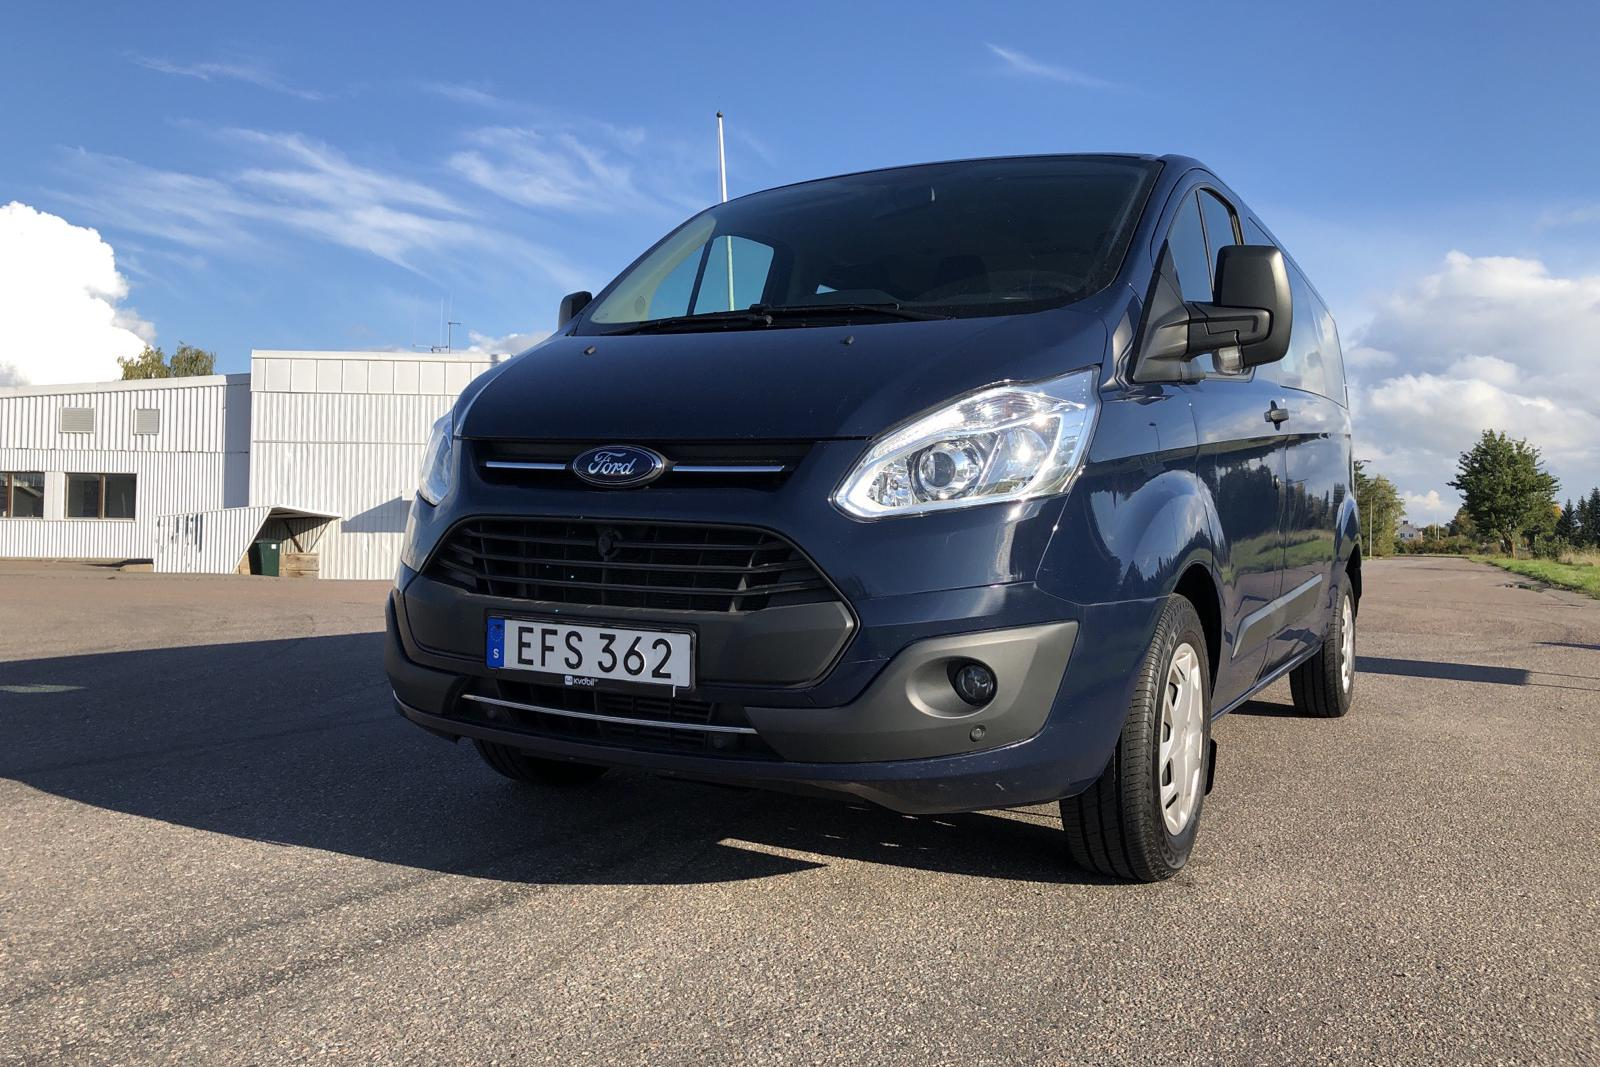 Ford Transit Custom 310 (130hk) - 71 077 km - Automatic - blue - 2017